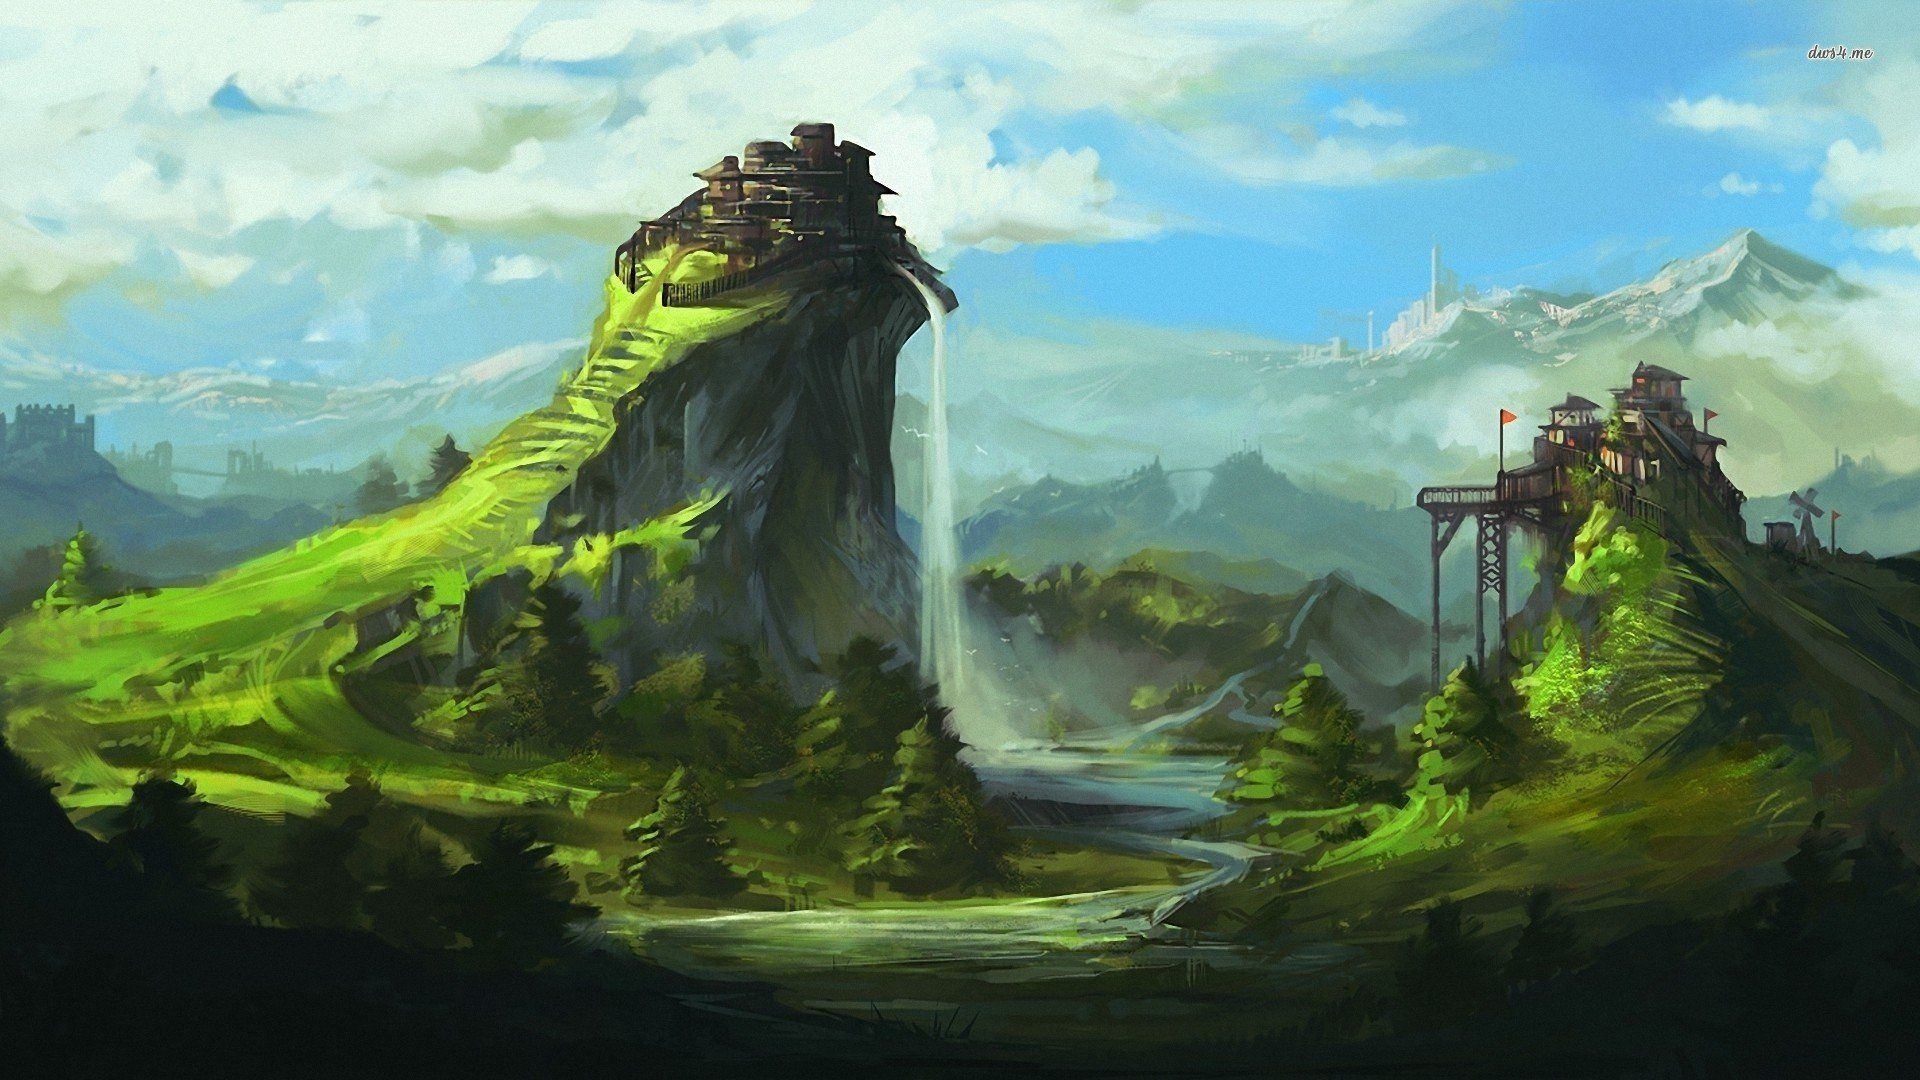 Guild Wars 2 Full Hd Wallpaper And Background Image: Guild Wars 2 Landscape Wallpaper